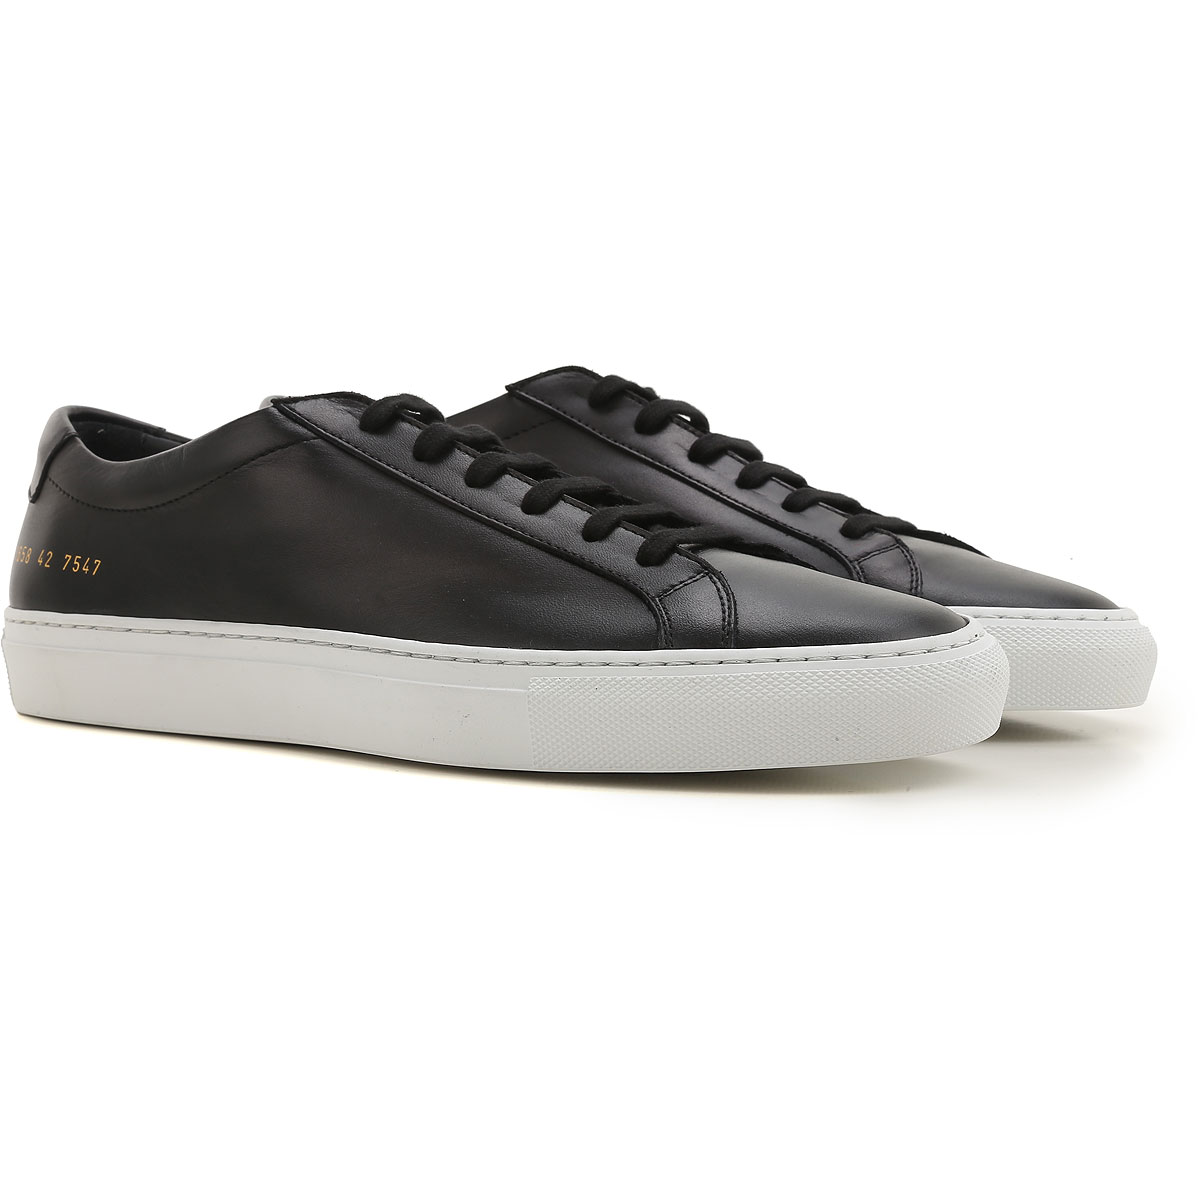 Image of Common Projects Sneakers for Men, Black, Leather, 2017, 6.5 7.5 9